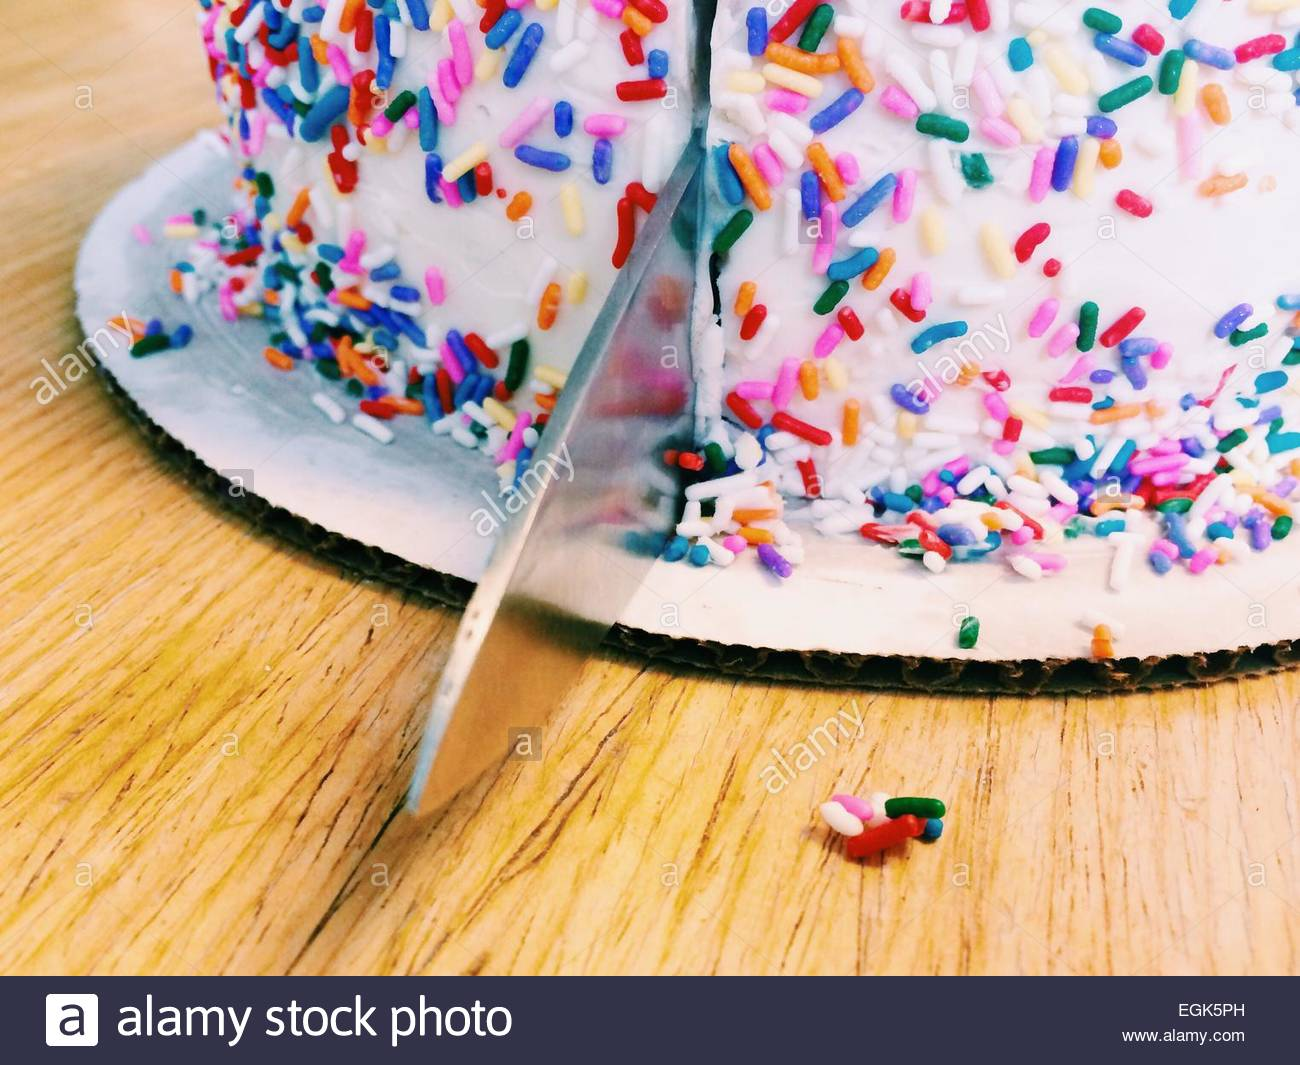 Cutting The Cake Background Images Indoors